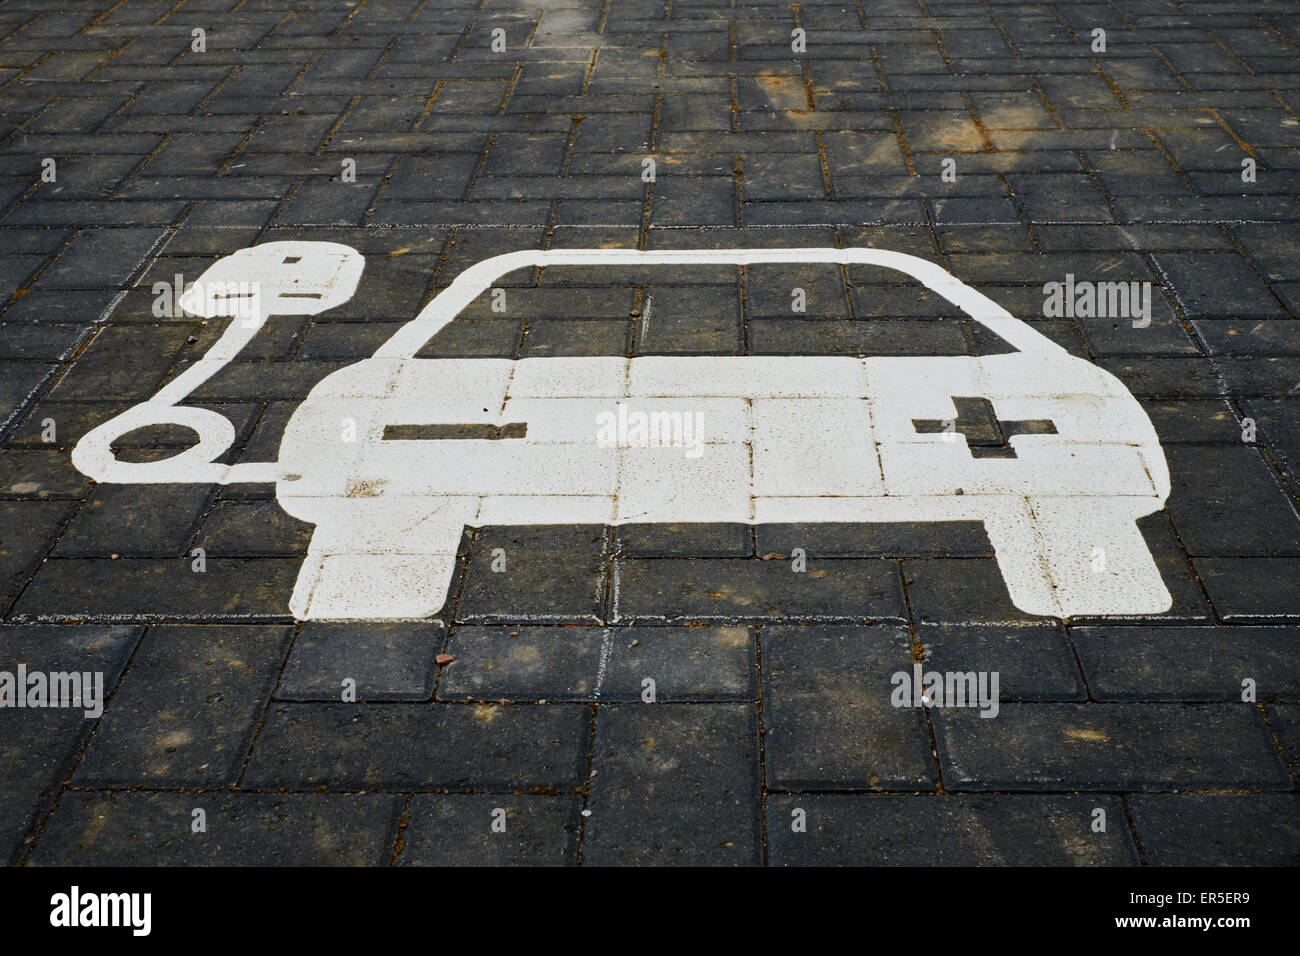 Electric car recharge station sign - Stock Image